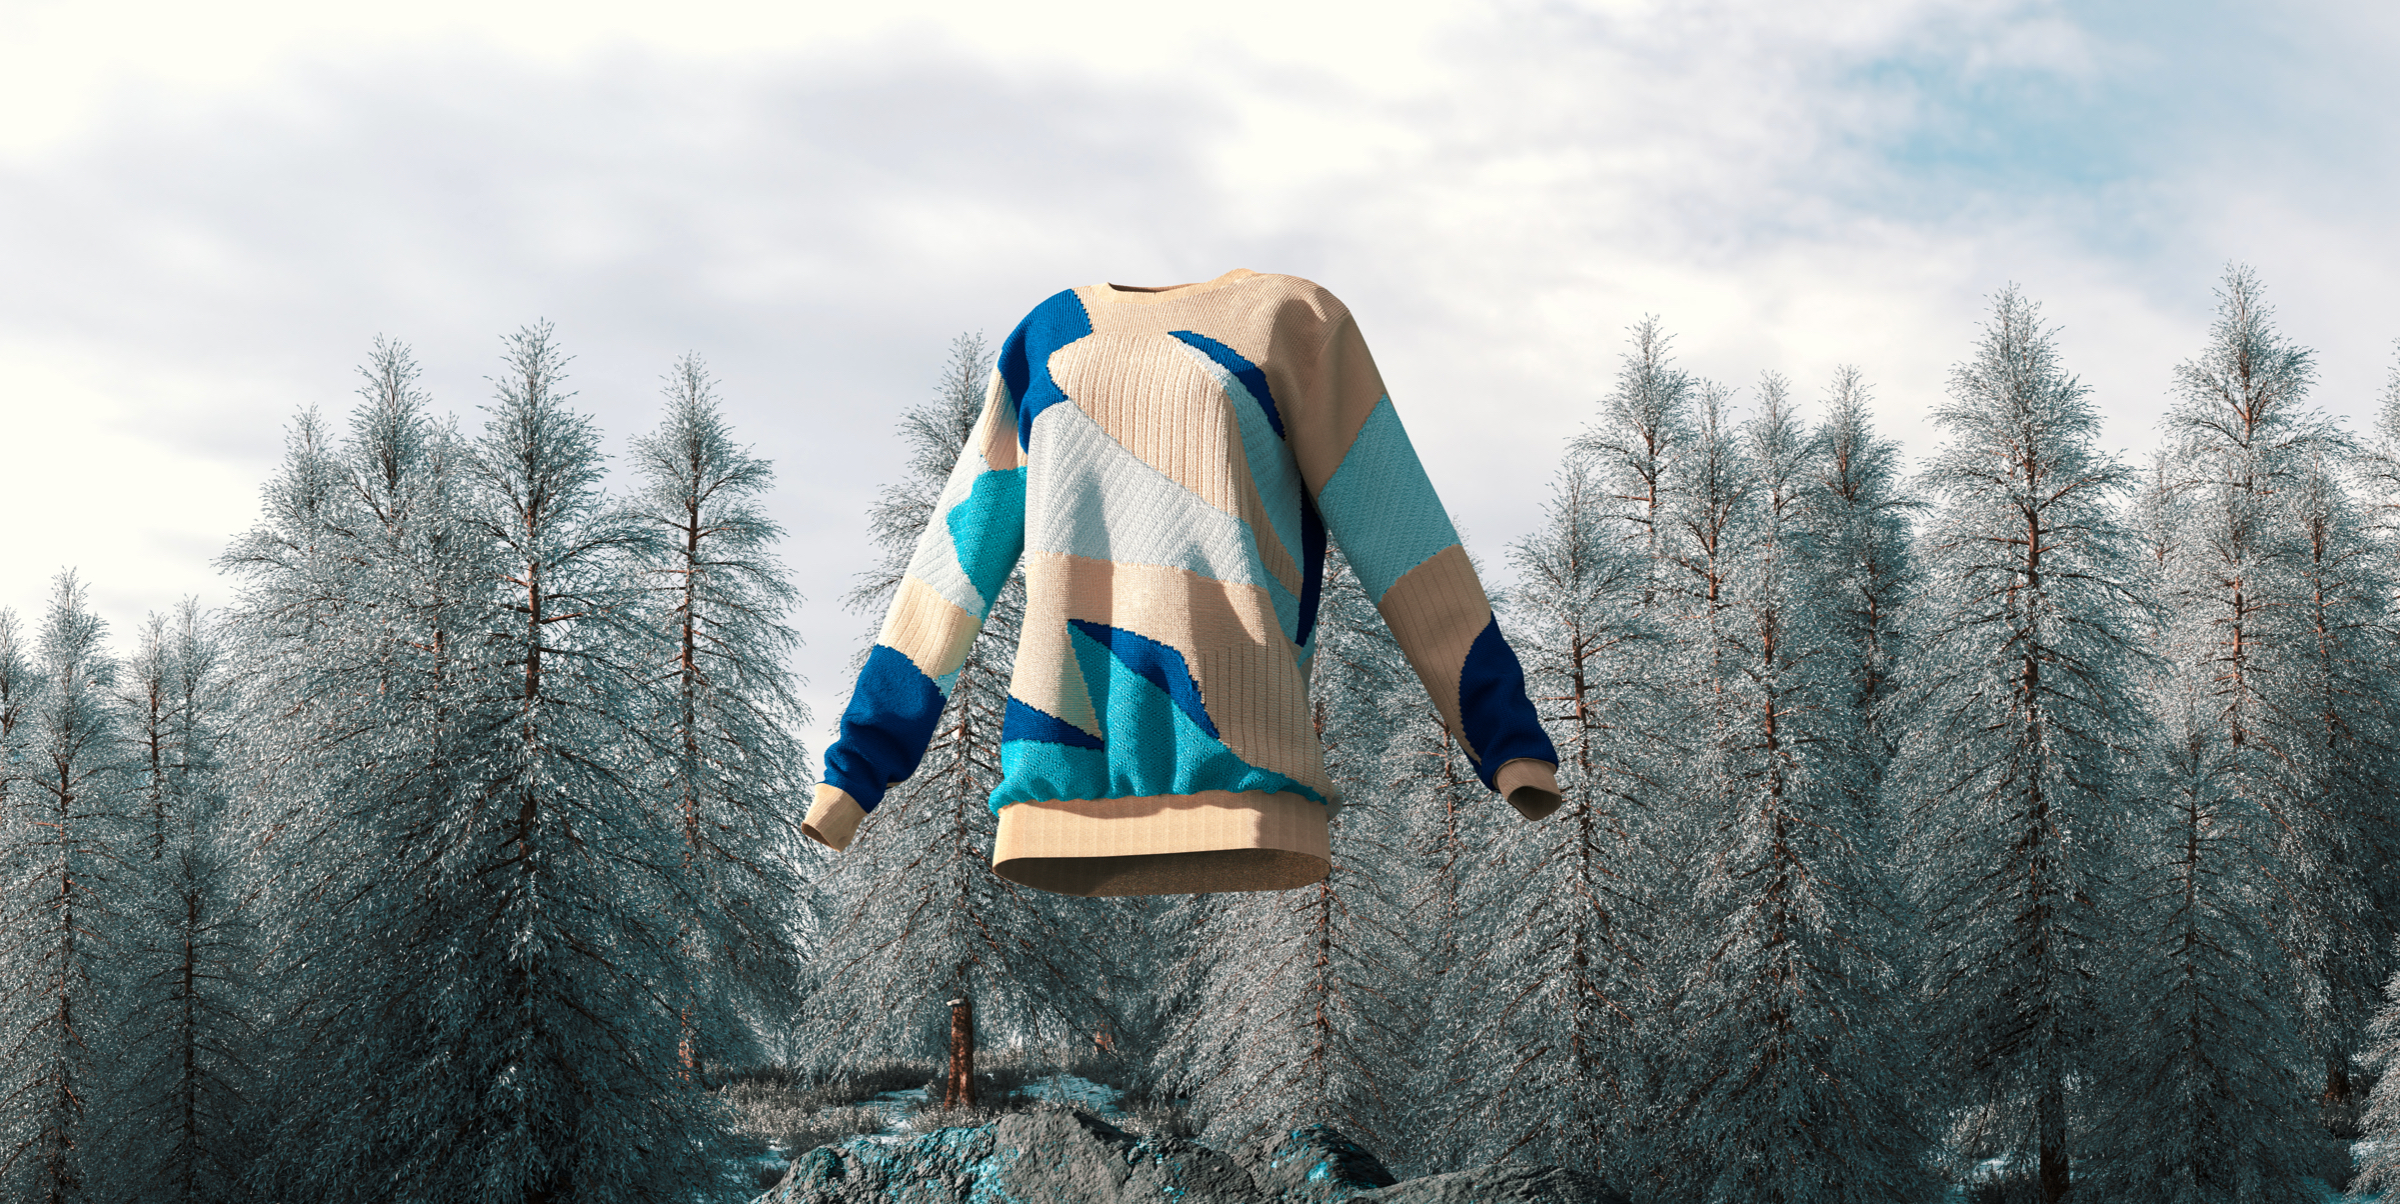 Wool sweater in a mountain background